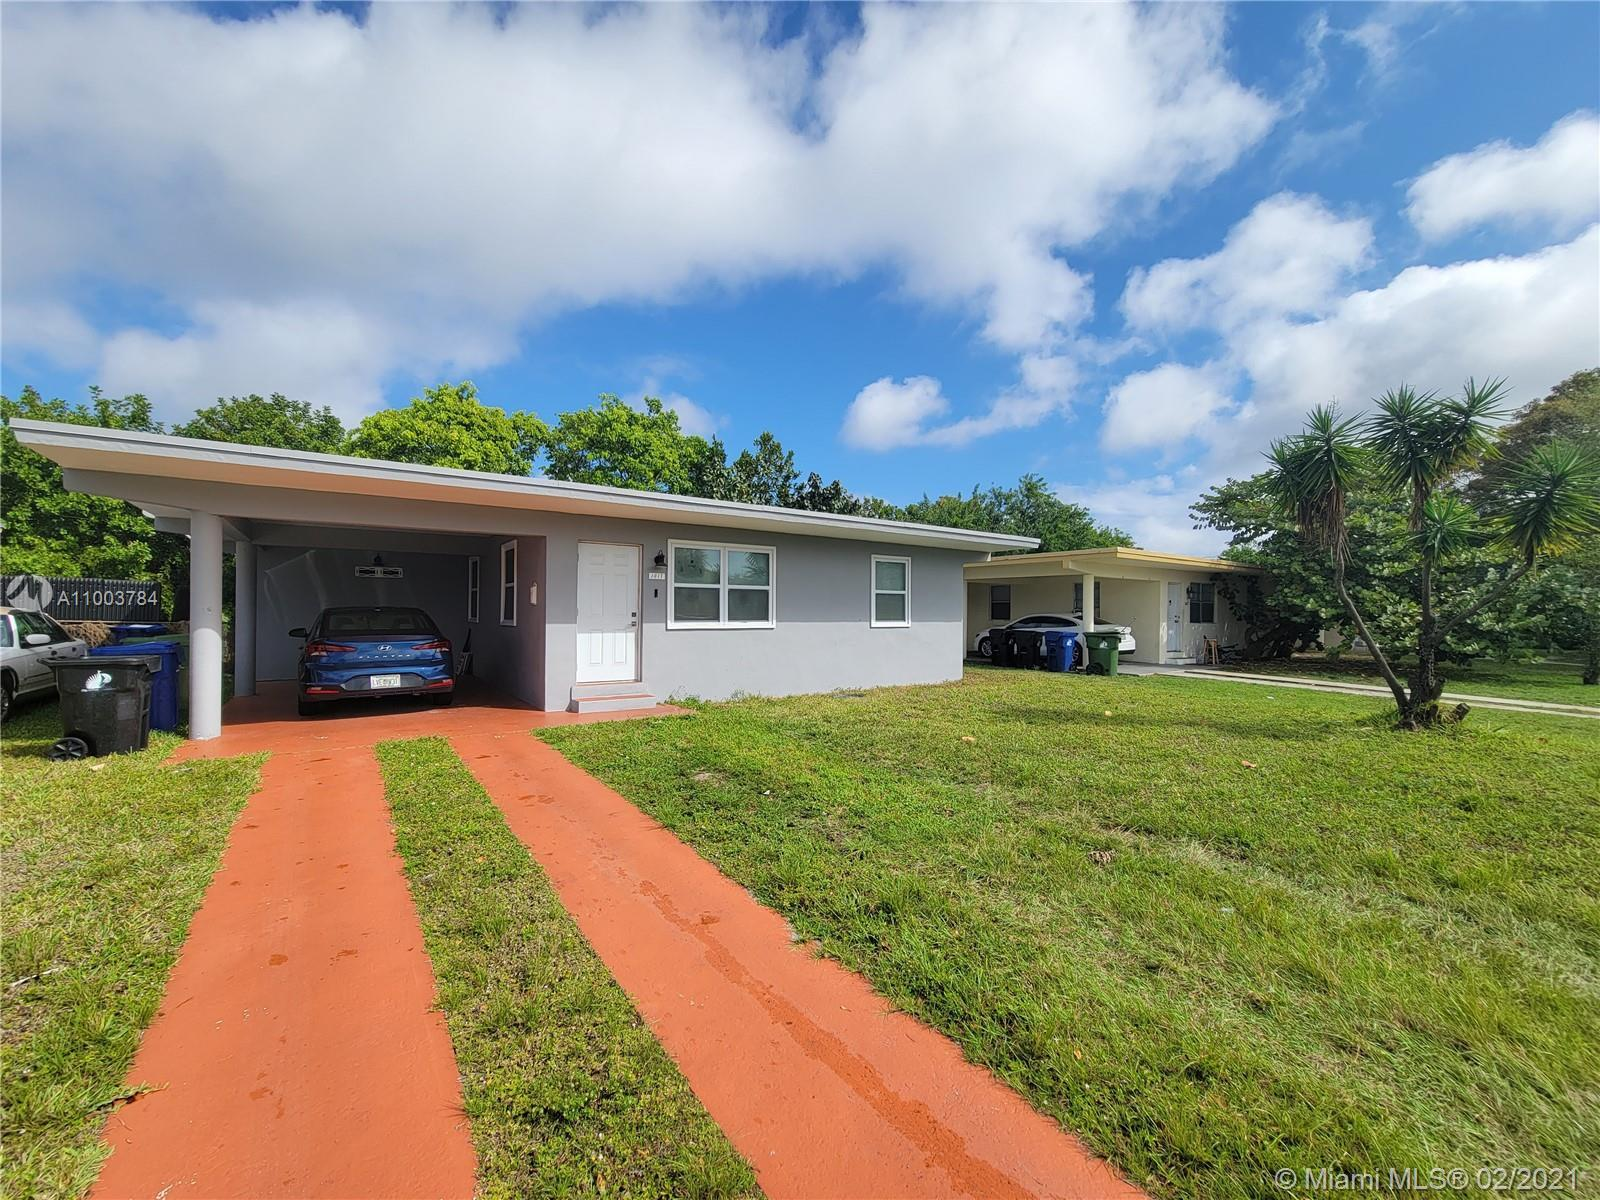 Upgraded 2 bedroom home centrally located near major highways, beaches and Downtown Ft. Lauderdale!